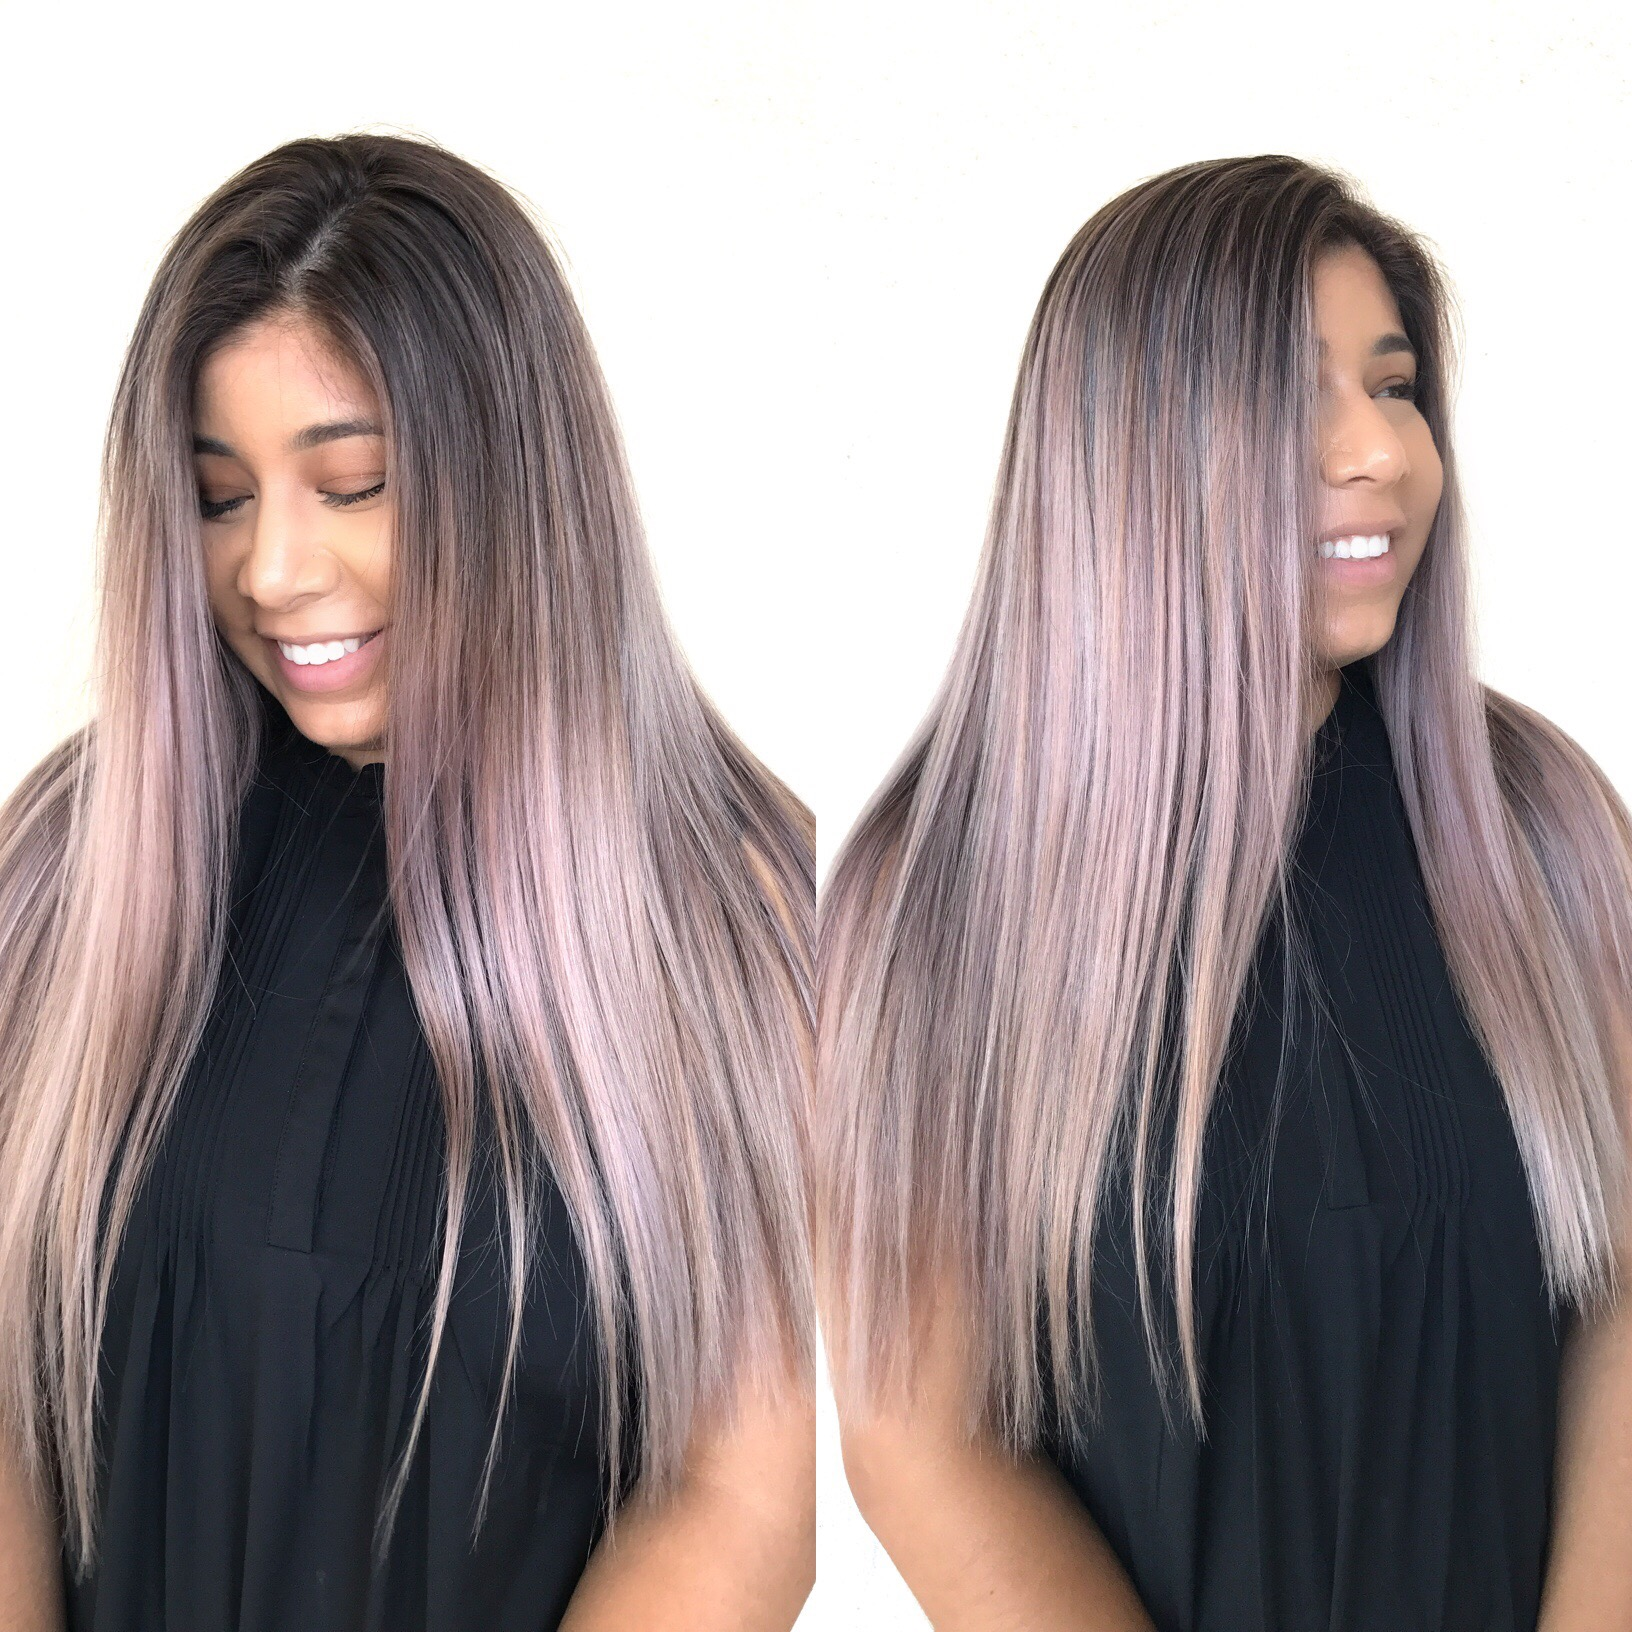 Fantasy color | Lilac, long layers